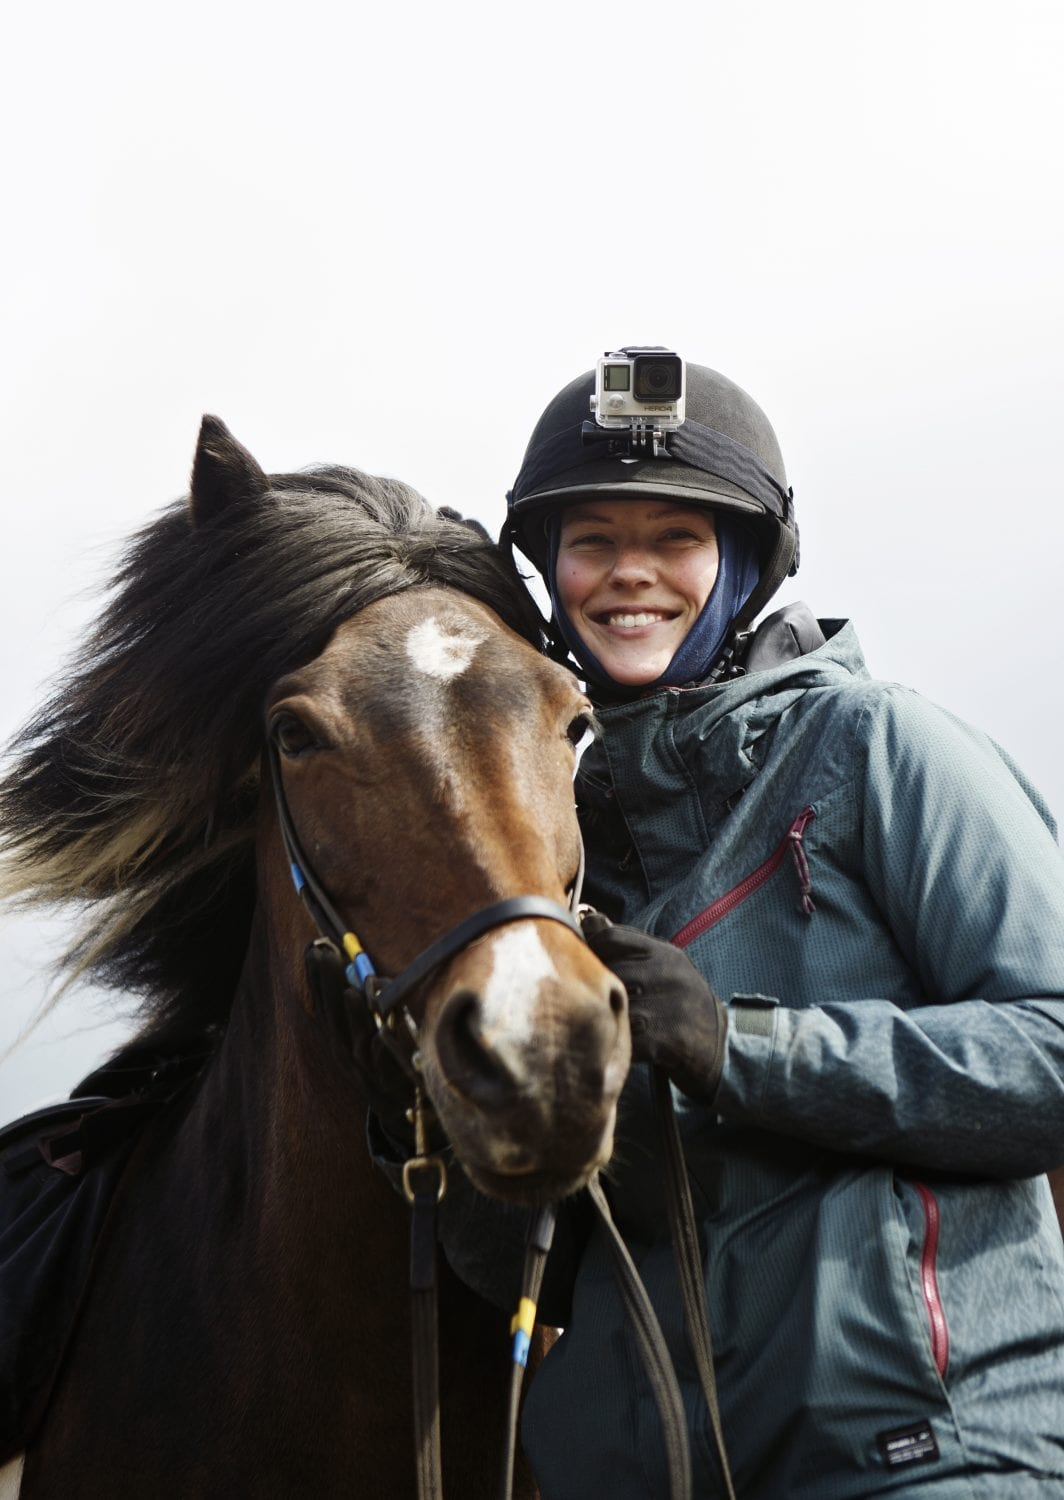 The radiant smile of a woman with her horse. Her camera is tied to the top of her helmet